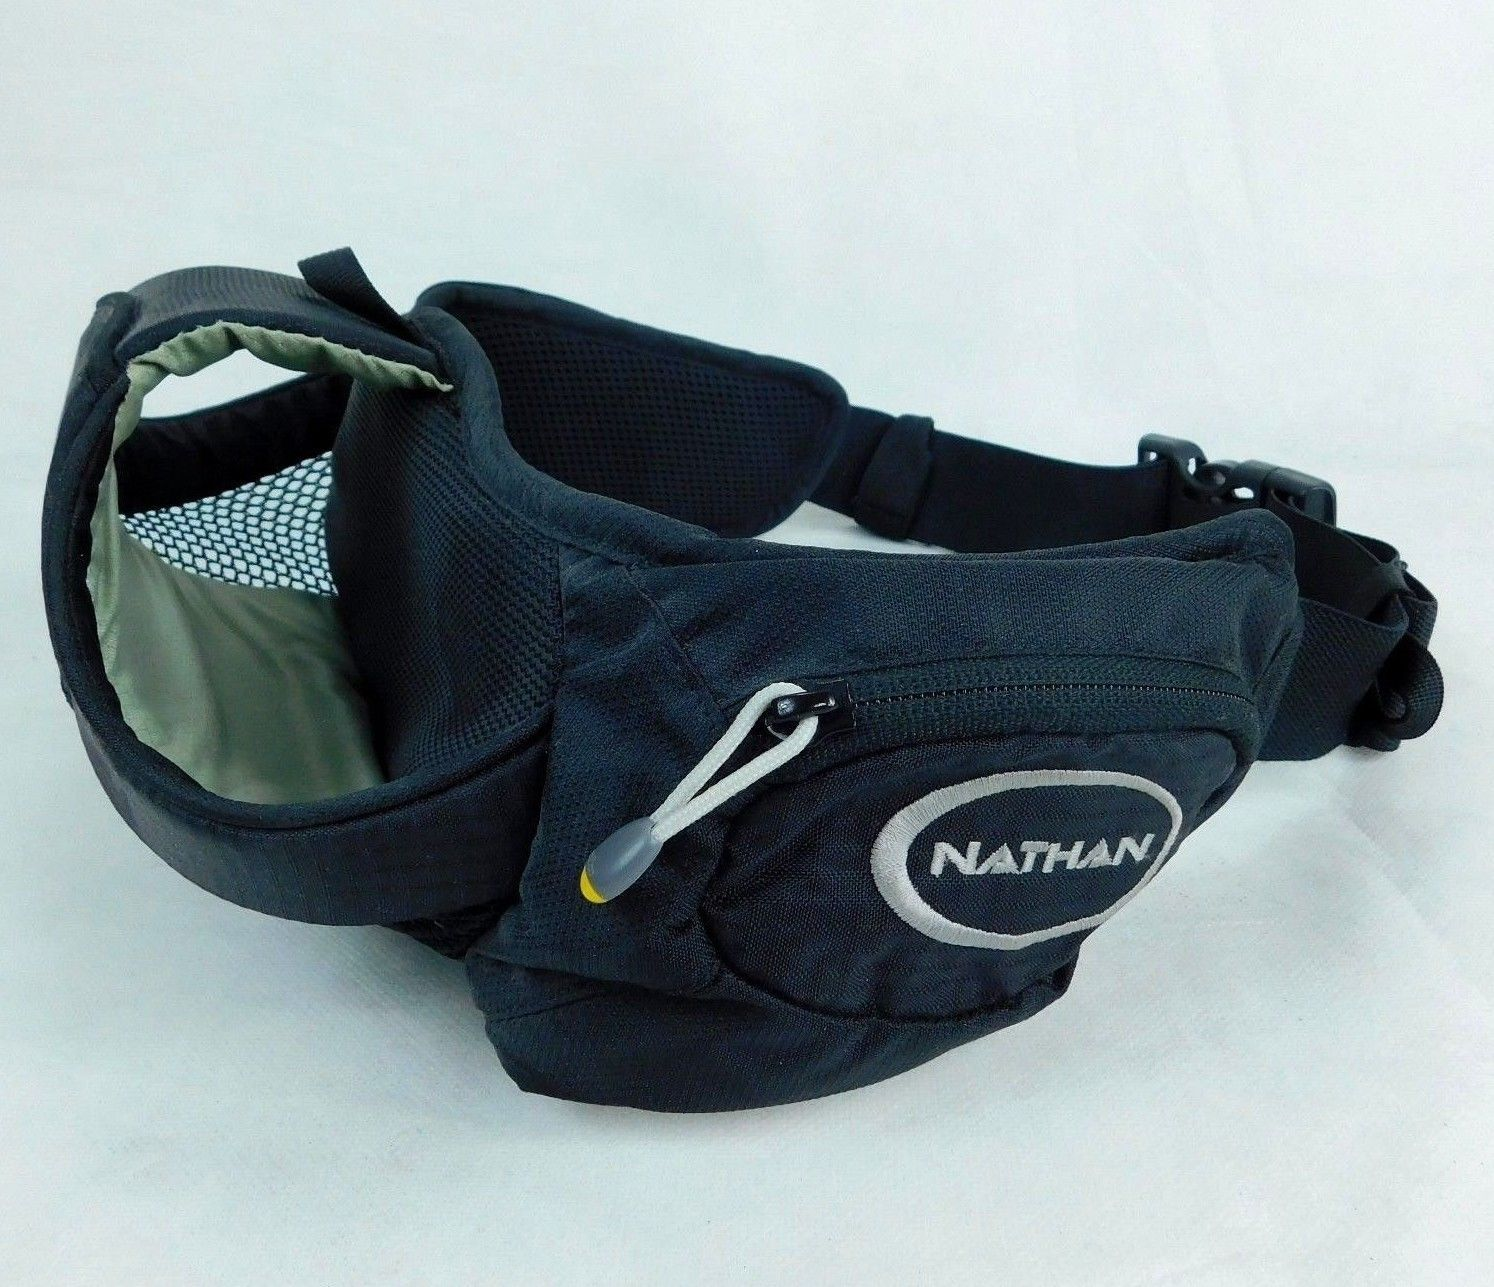 81f536591f Nathan Hydration Black Padded Waist Pack and 50 similar items